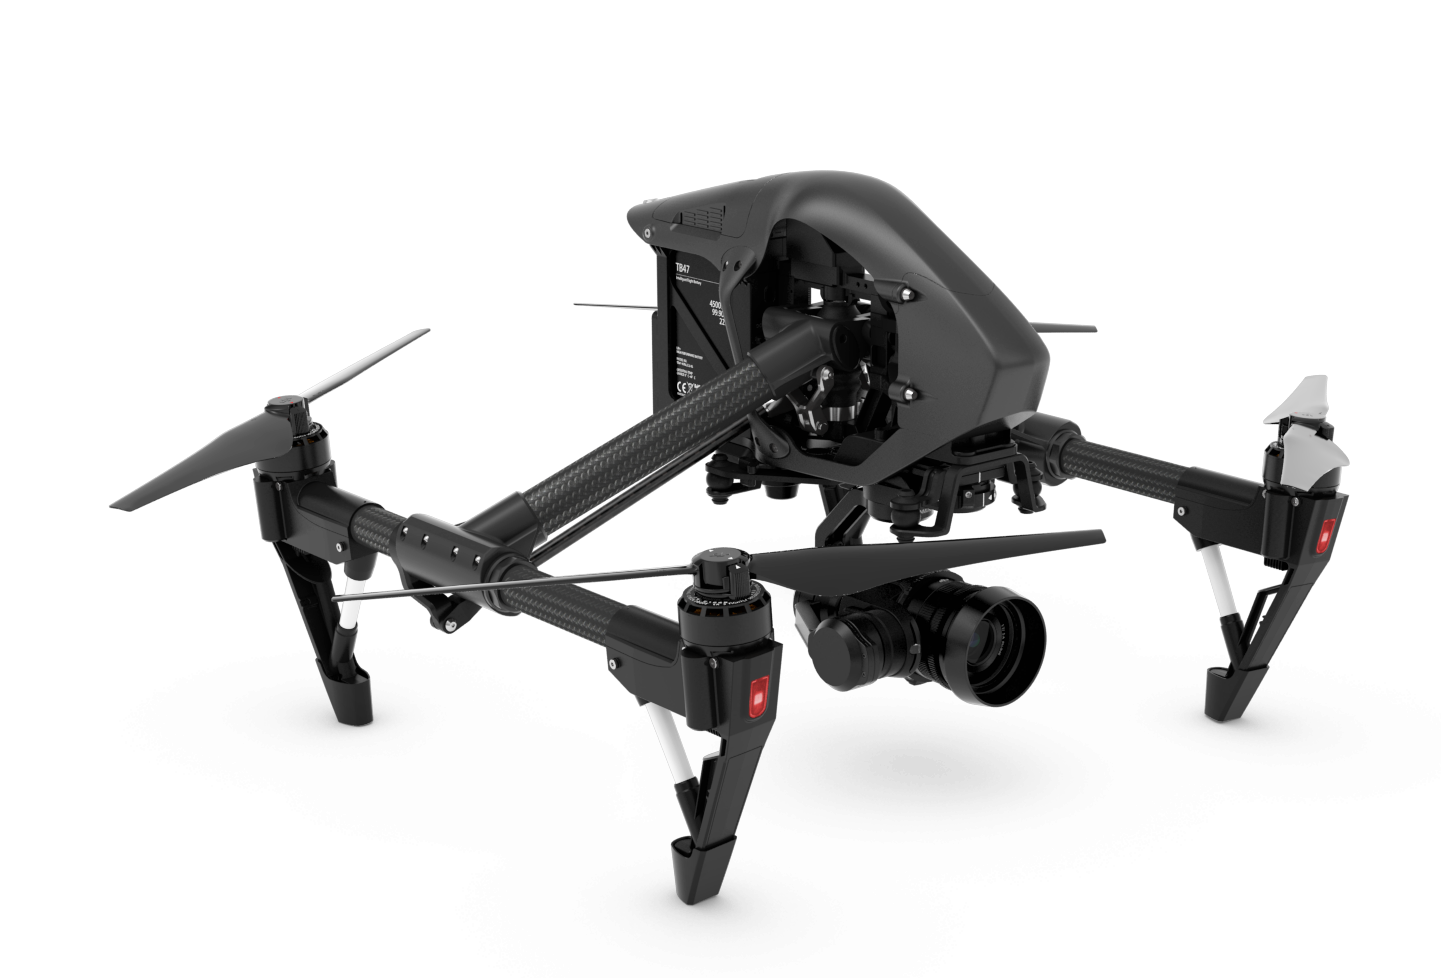 drone hobby kit with Dji Introduces Phantom 3 4k And Inspire 1 Pro Black Edition 1772 on Military Steals Idea Of Anyone Who Ever Tied A Cellphone Camera To Quadcopter besides Neo Cipher Drago Occhi Galattici moreover Robophilo Humanoid Robot Kit additionally Rq 7 Shadow 135 28 as well Dji Introduces Phantom 3 4k And Inspire 1 Pro Black Edition 1772.